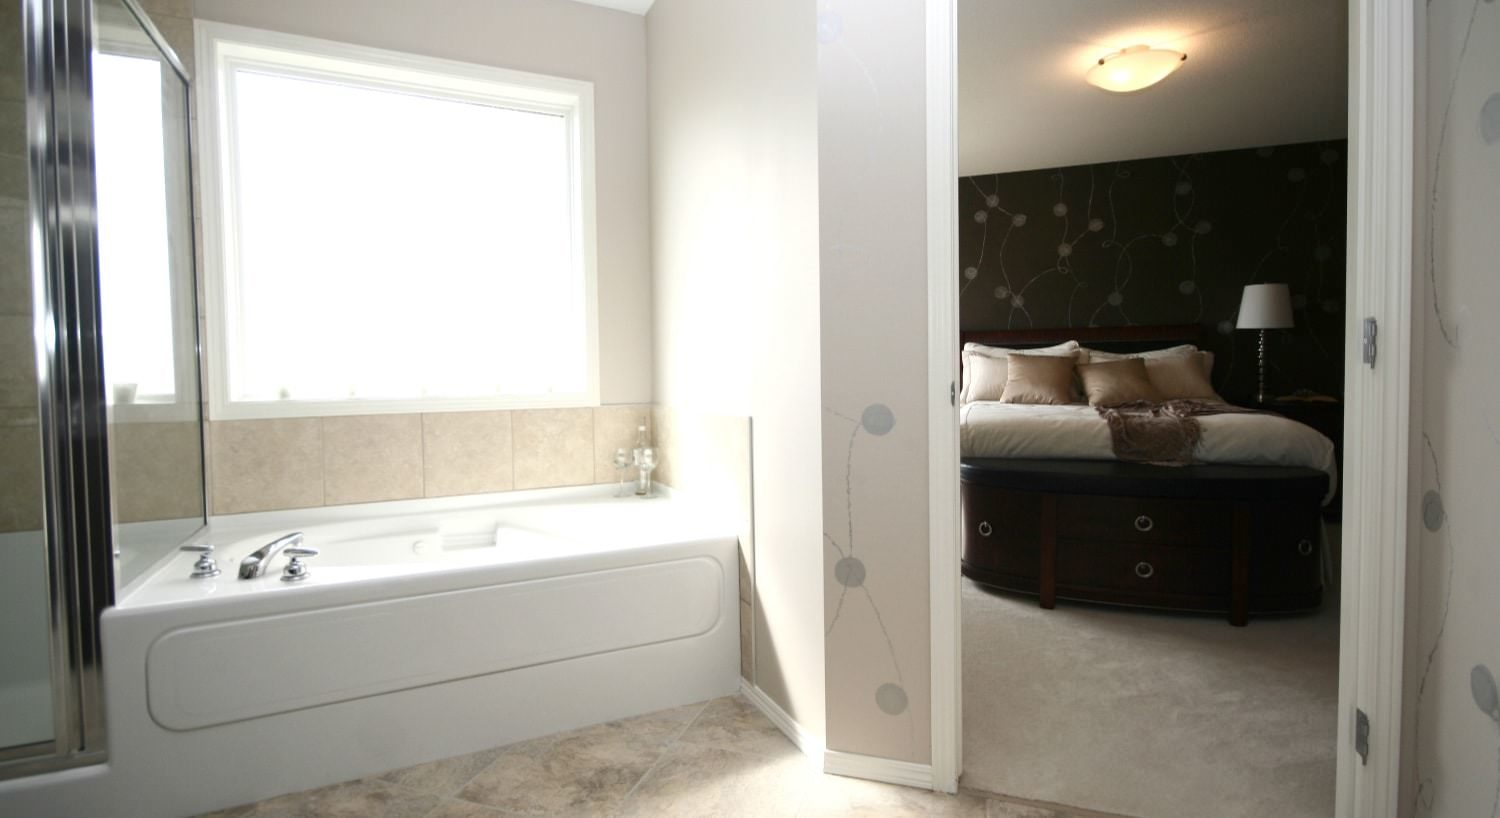 Bathroom with large white tub and separate stand up shower with tiled floor